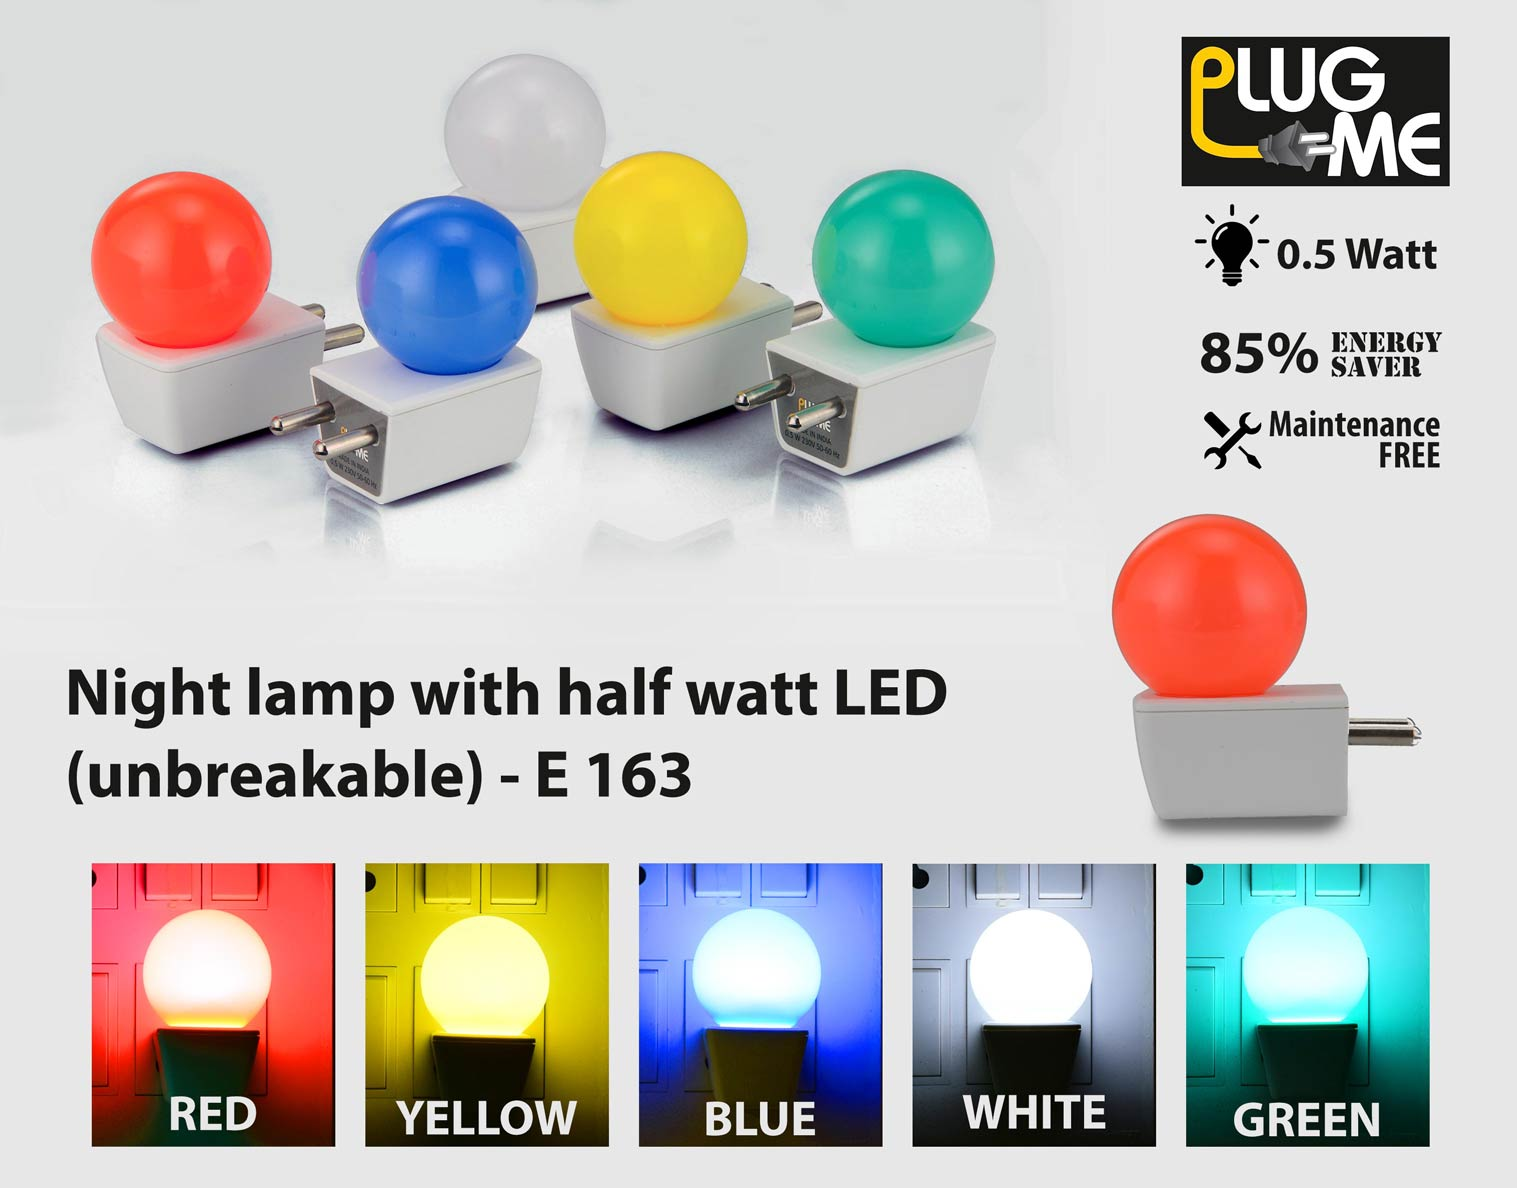 163 - Plug me: Night lamp with half watt LED (unbreakable)